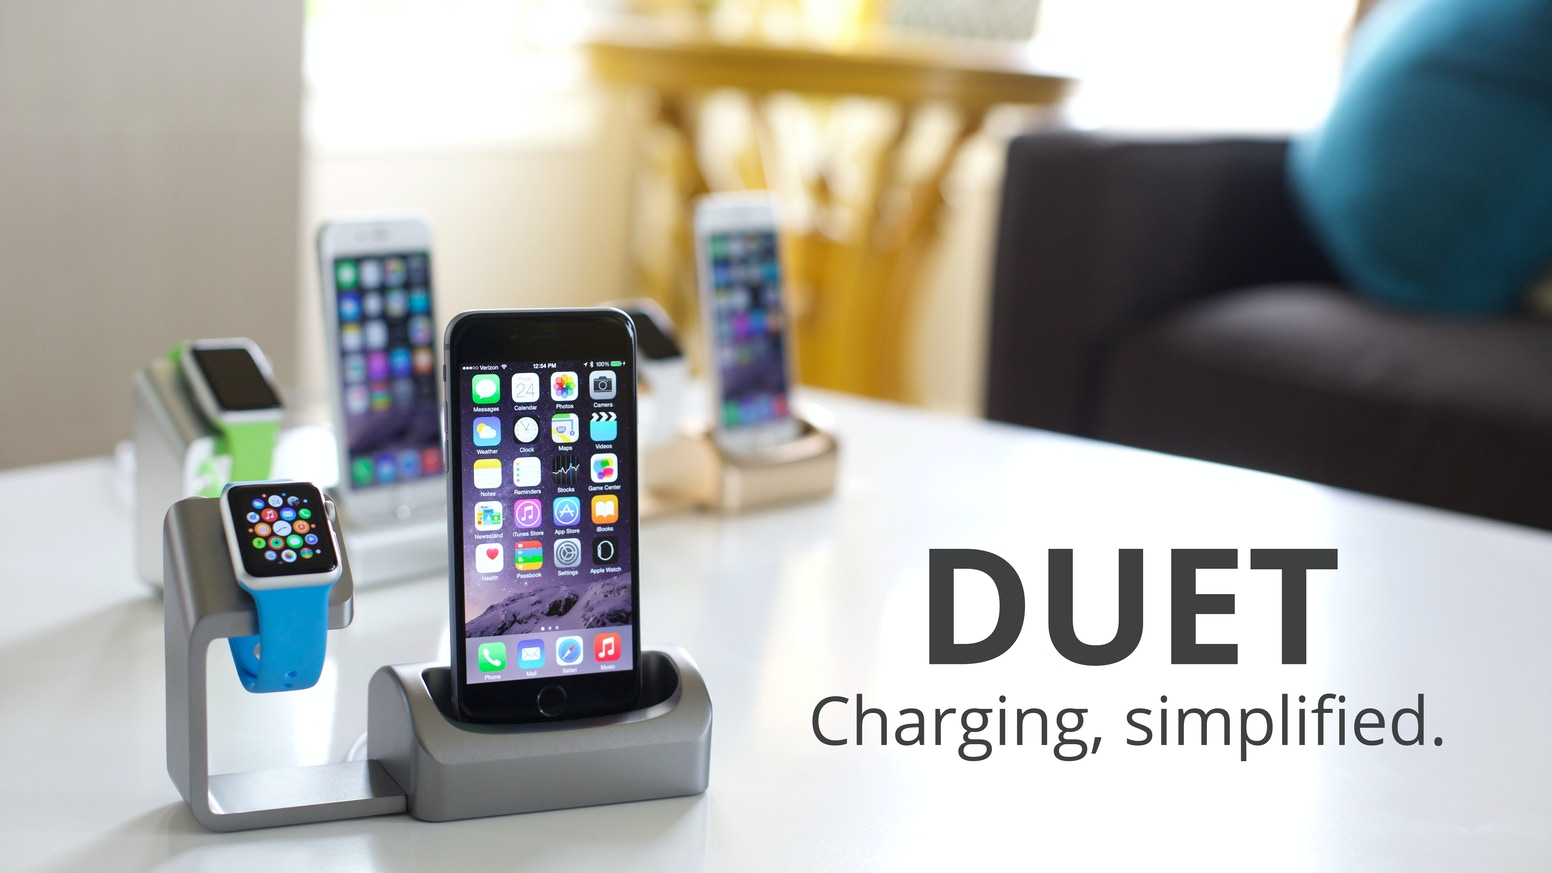 An elegant charging solution bringing iPhone and Apple Watch together in perfect harmony.